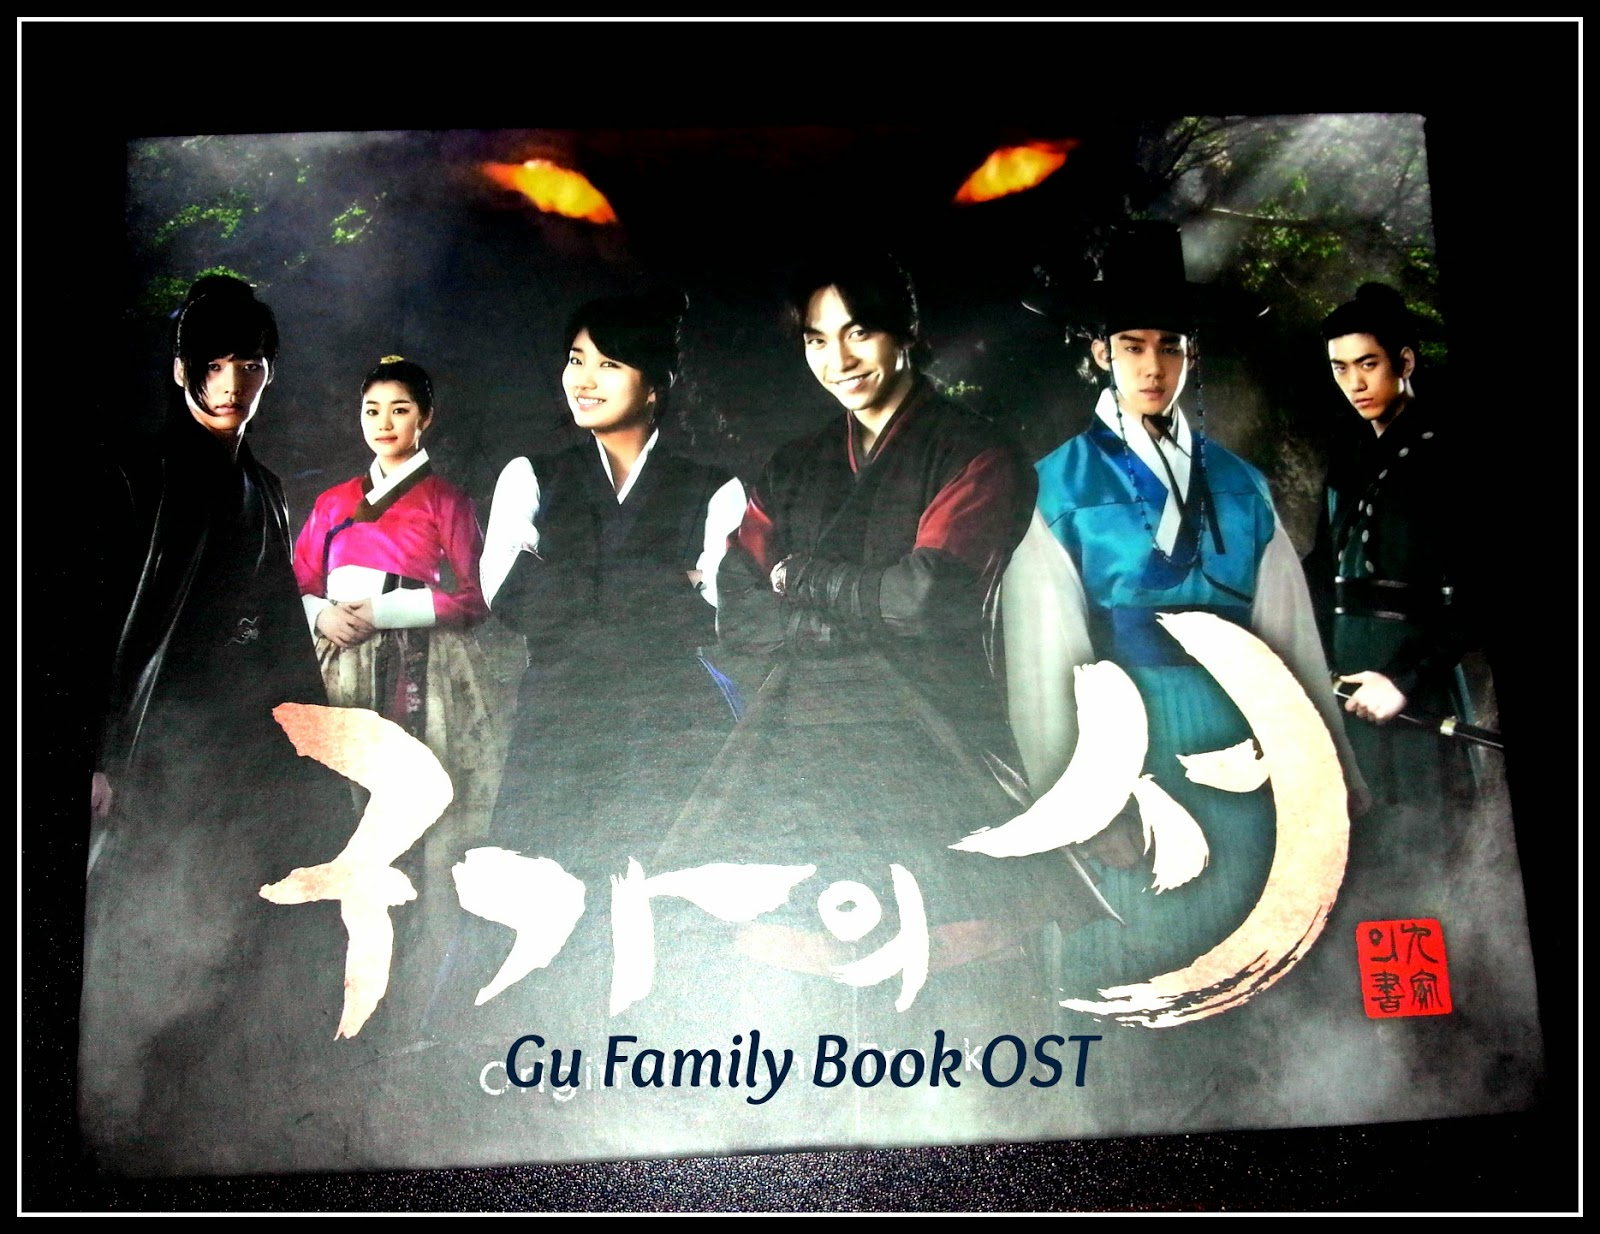 Gu Family Book Ost Disc 2